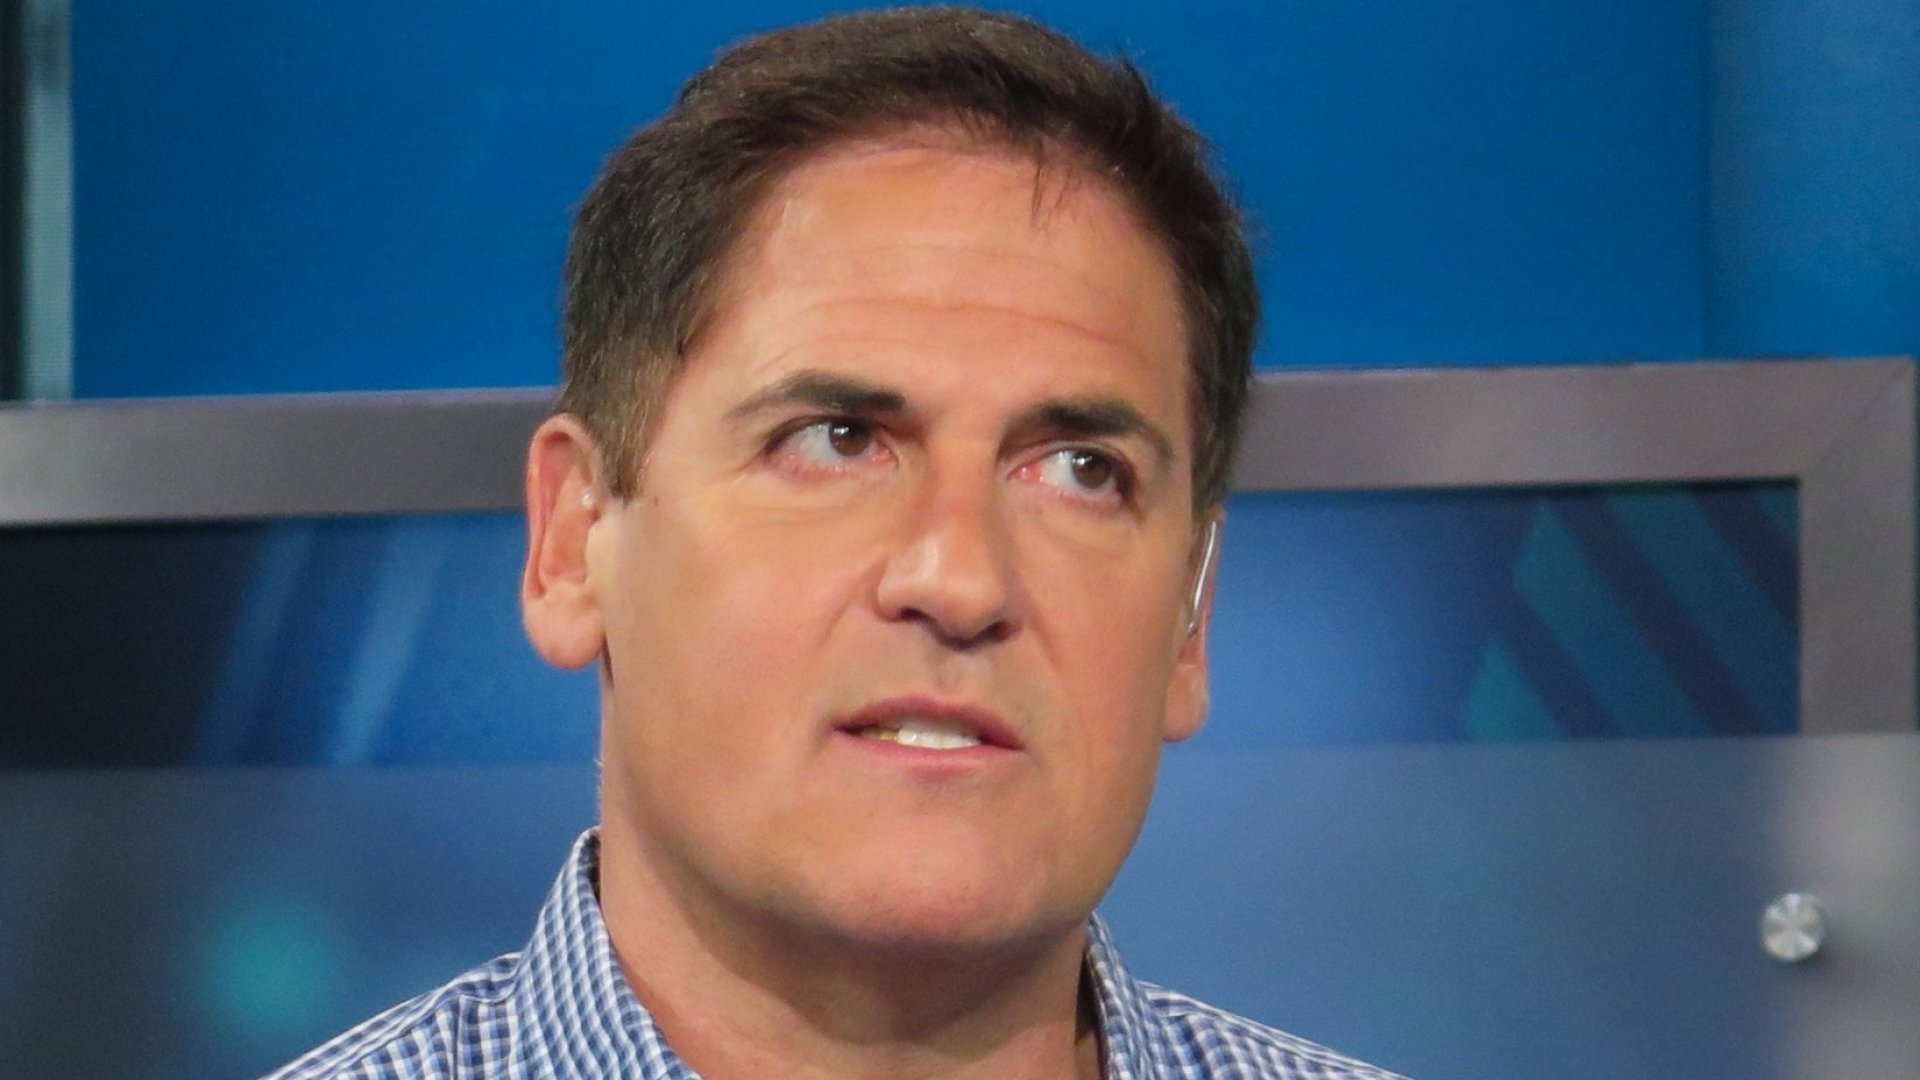 Mark Cuban: This Is the One Presidential Candidate I'd Run With